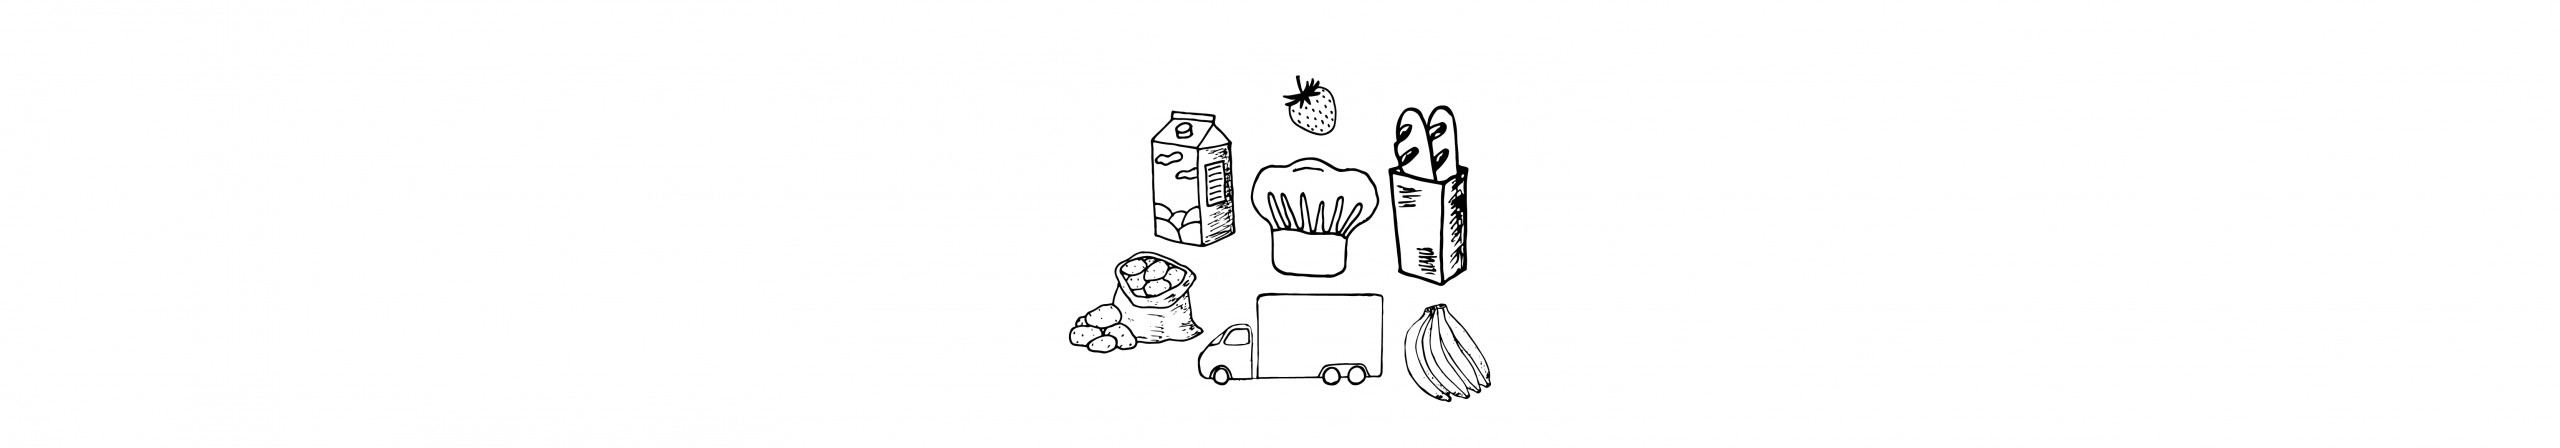 Illustration of groceries.